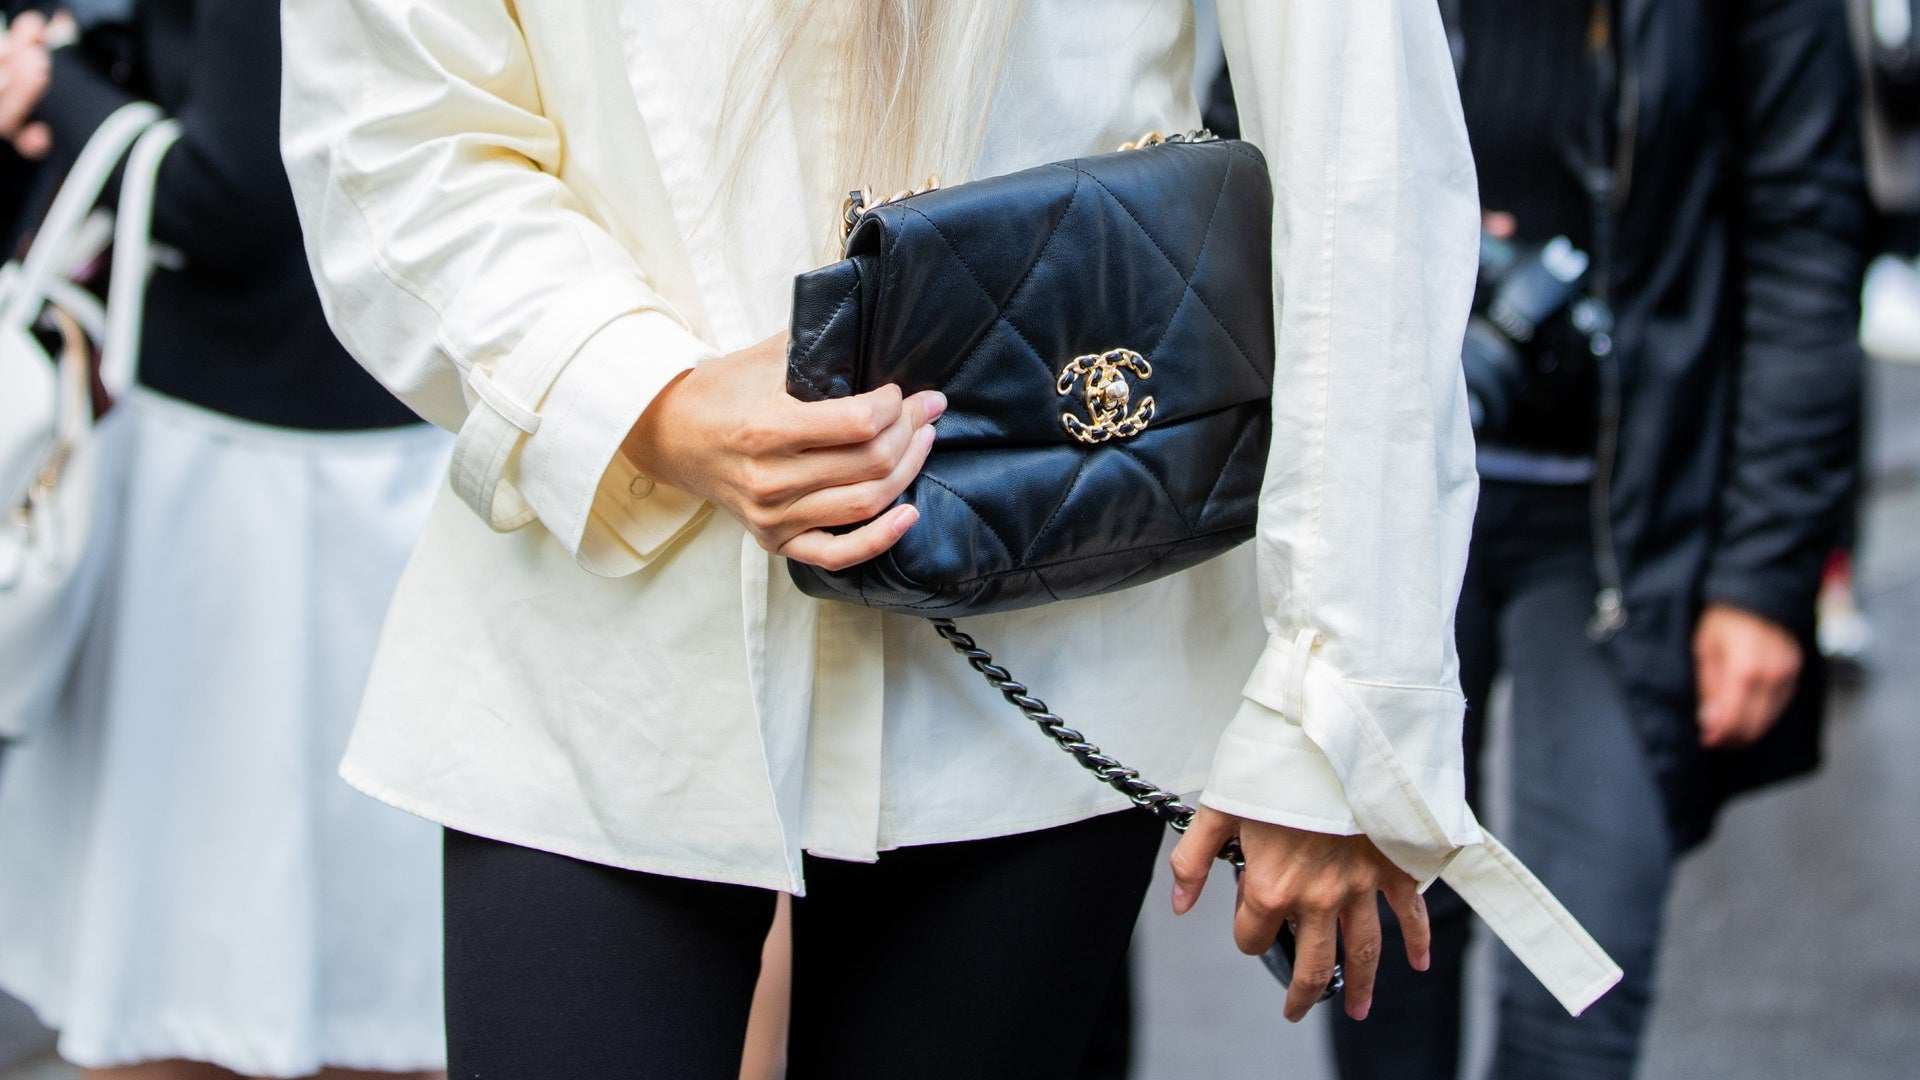 Will Chanel Fix My Bag? Everything You Need to Know About Chanel Repair Chanel 19 bag